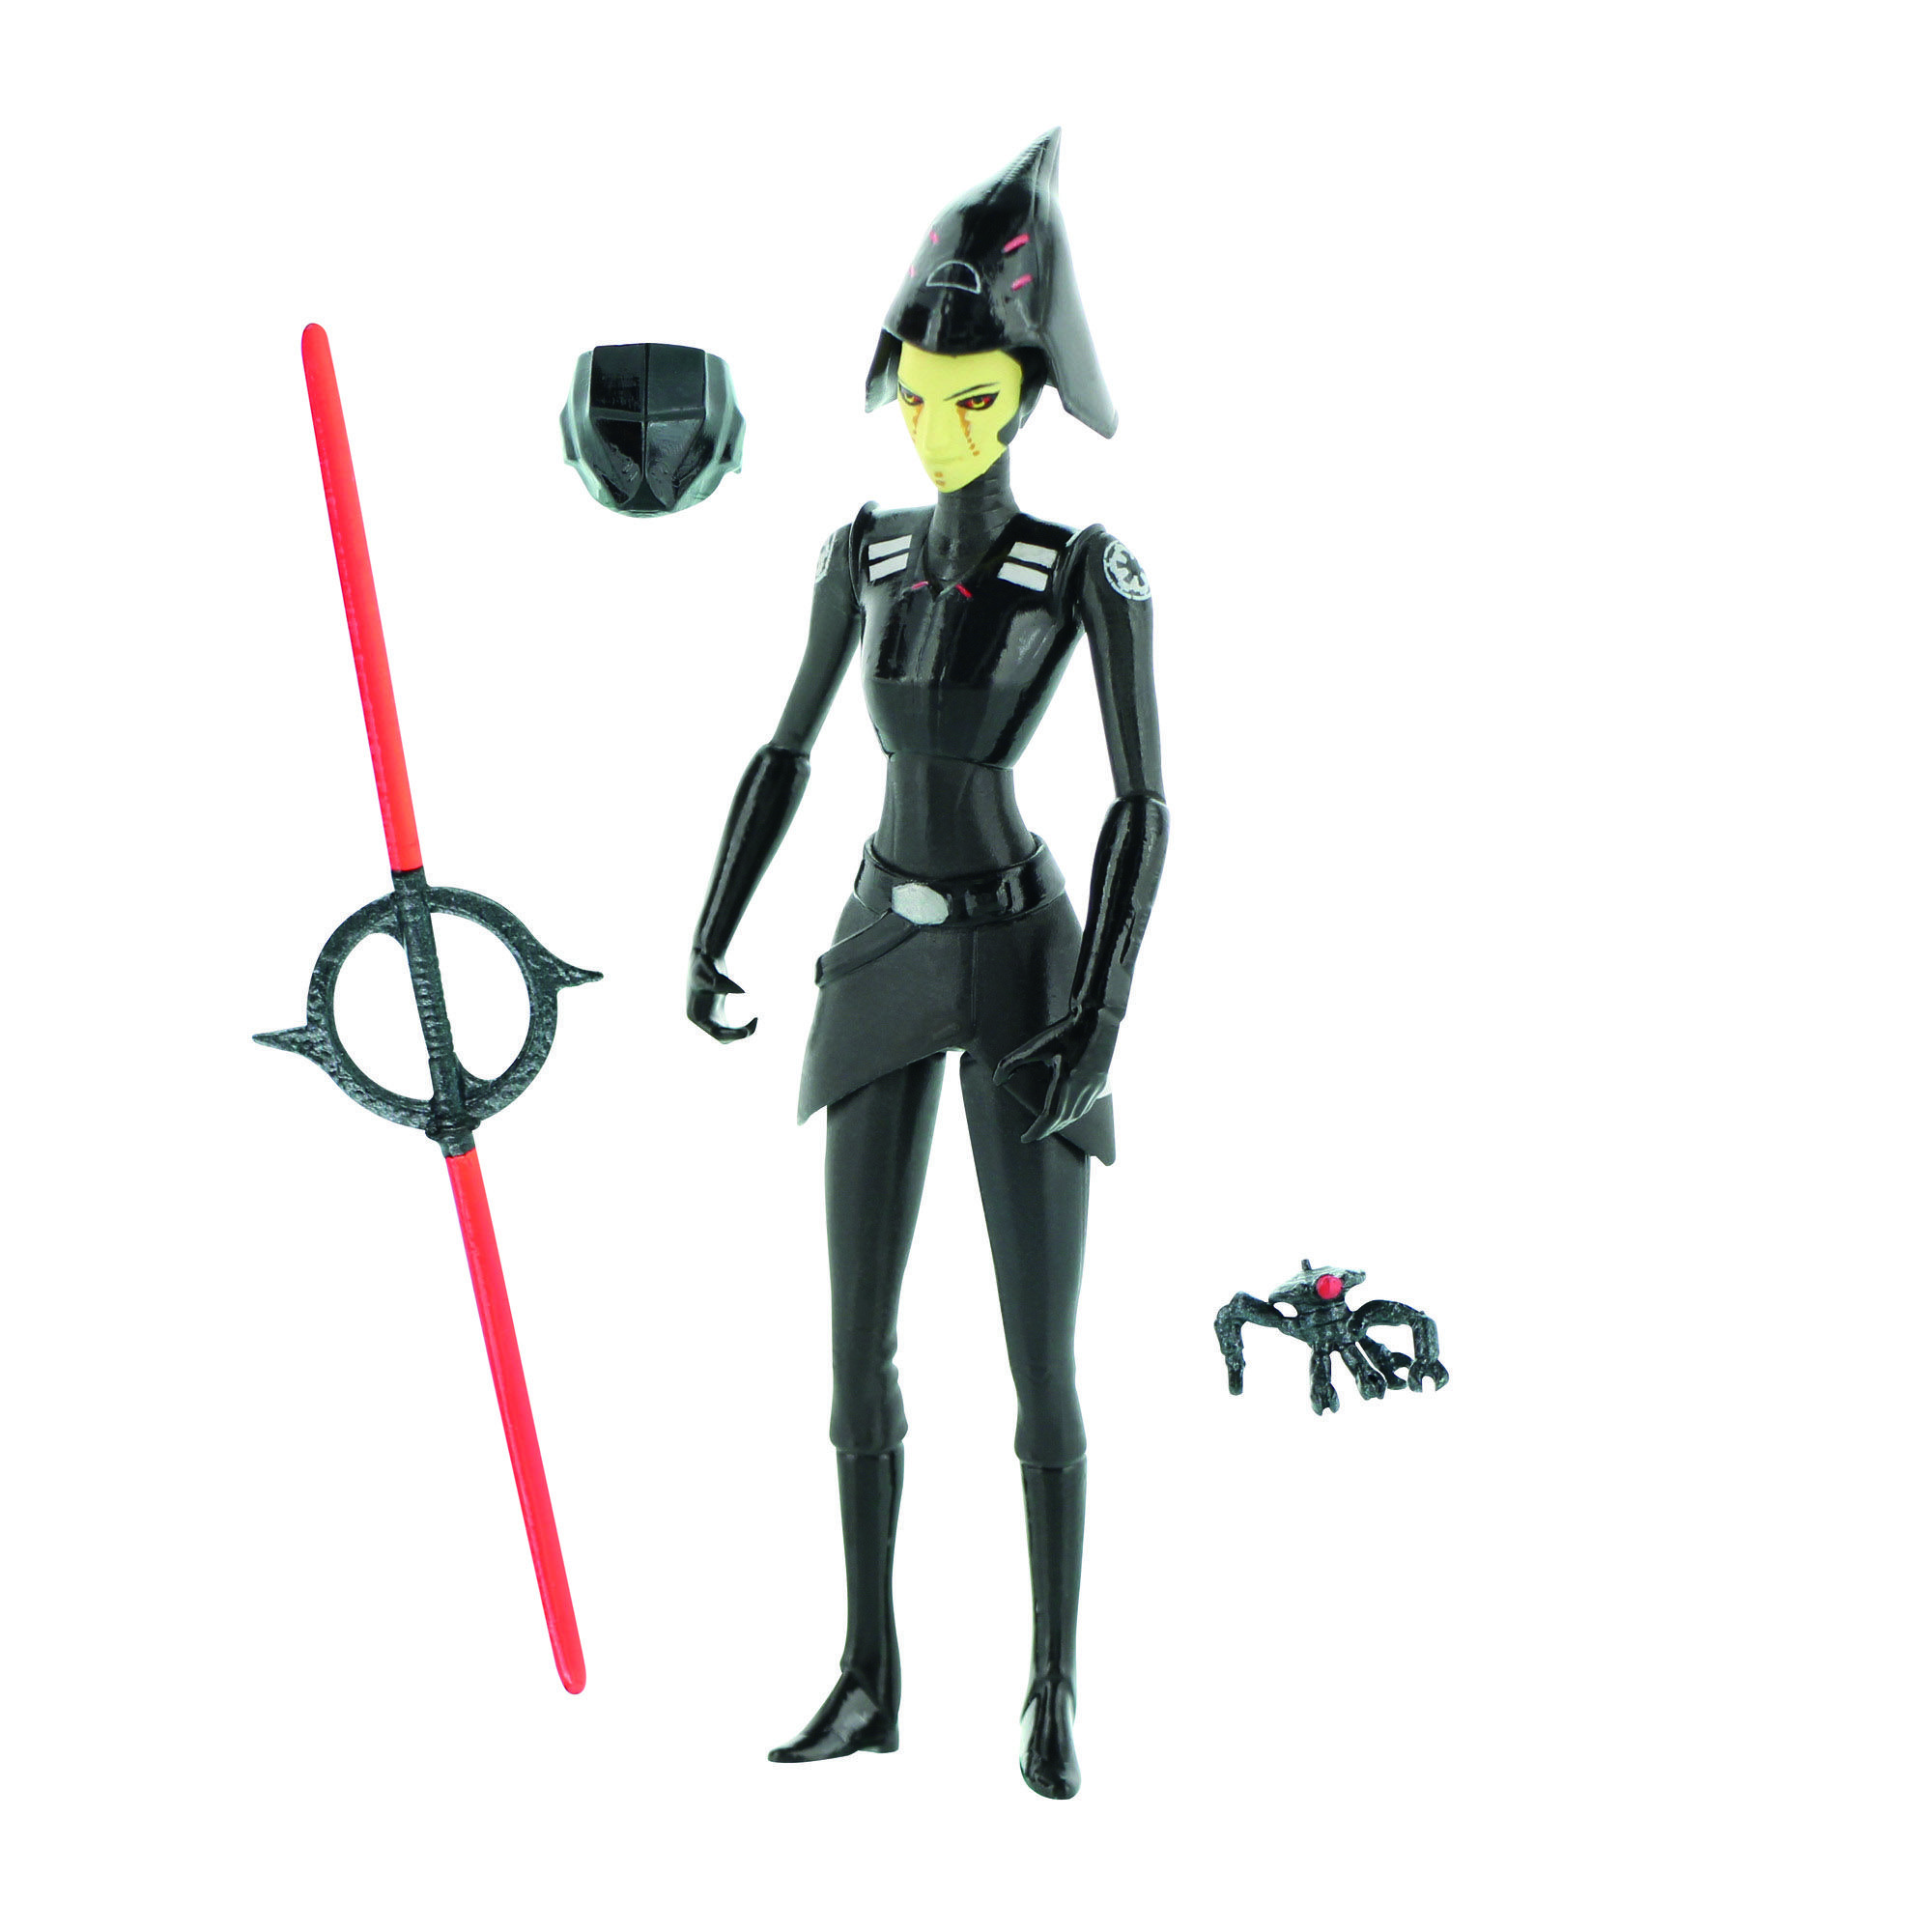 New Star Wars Toys : New star wars rebels black series and lightsaber toys